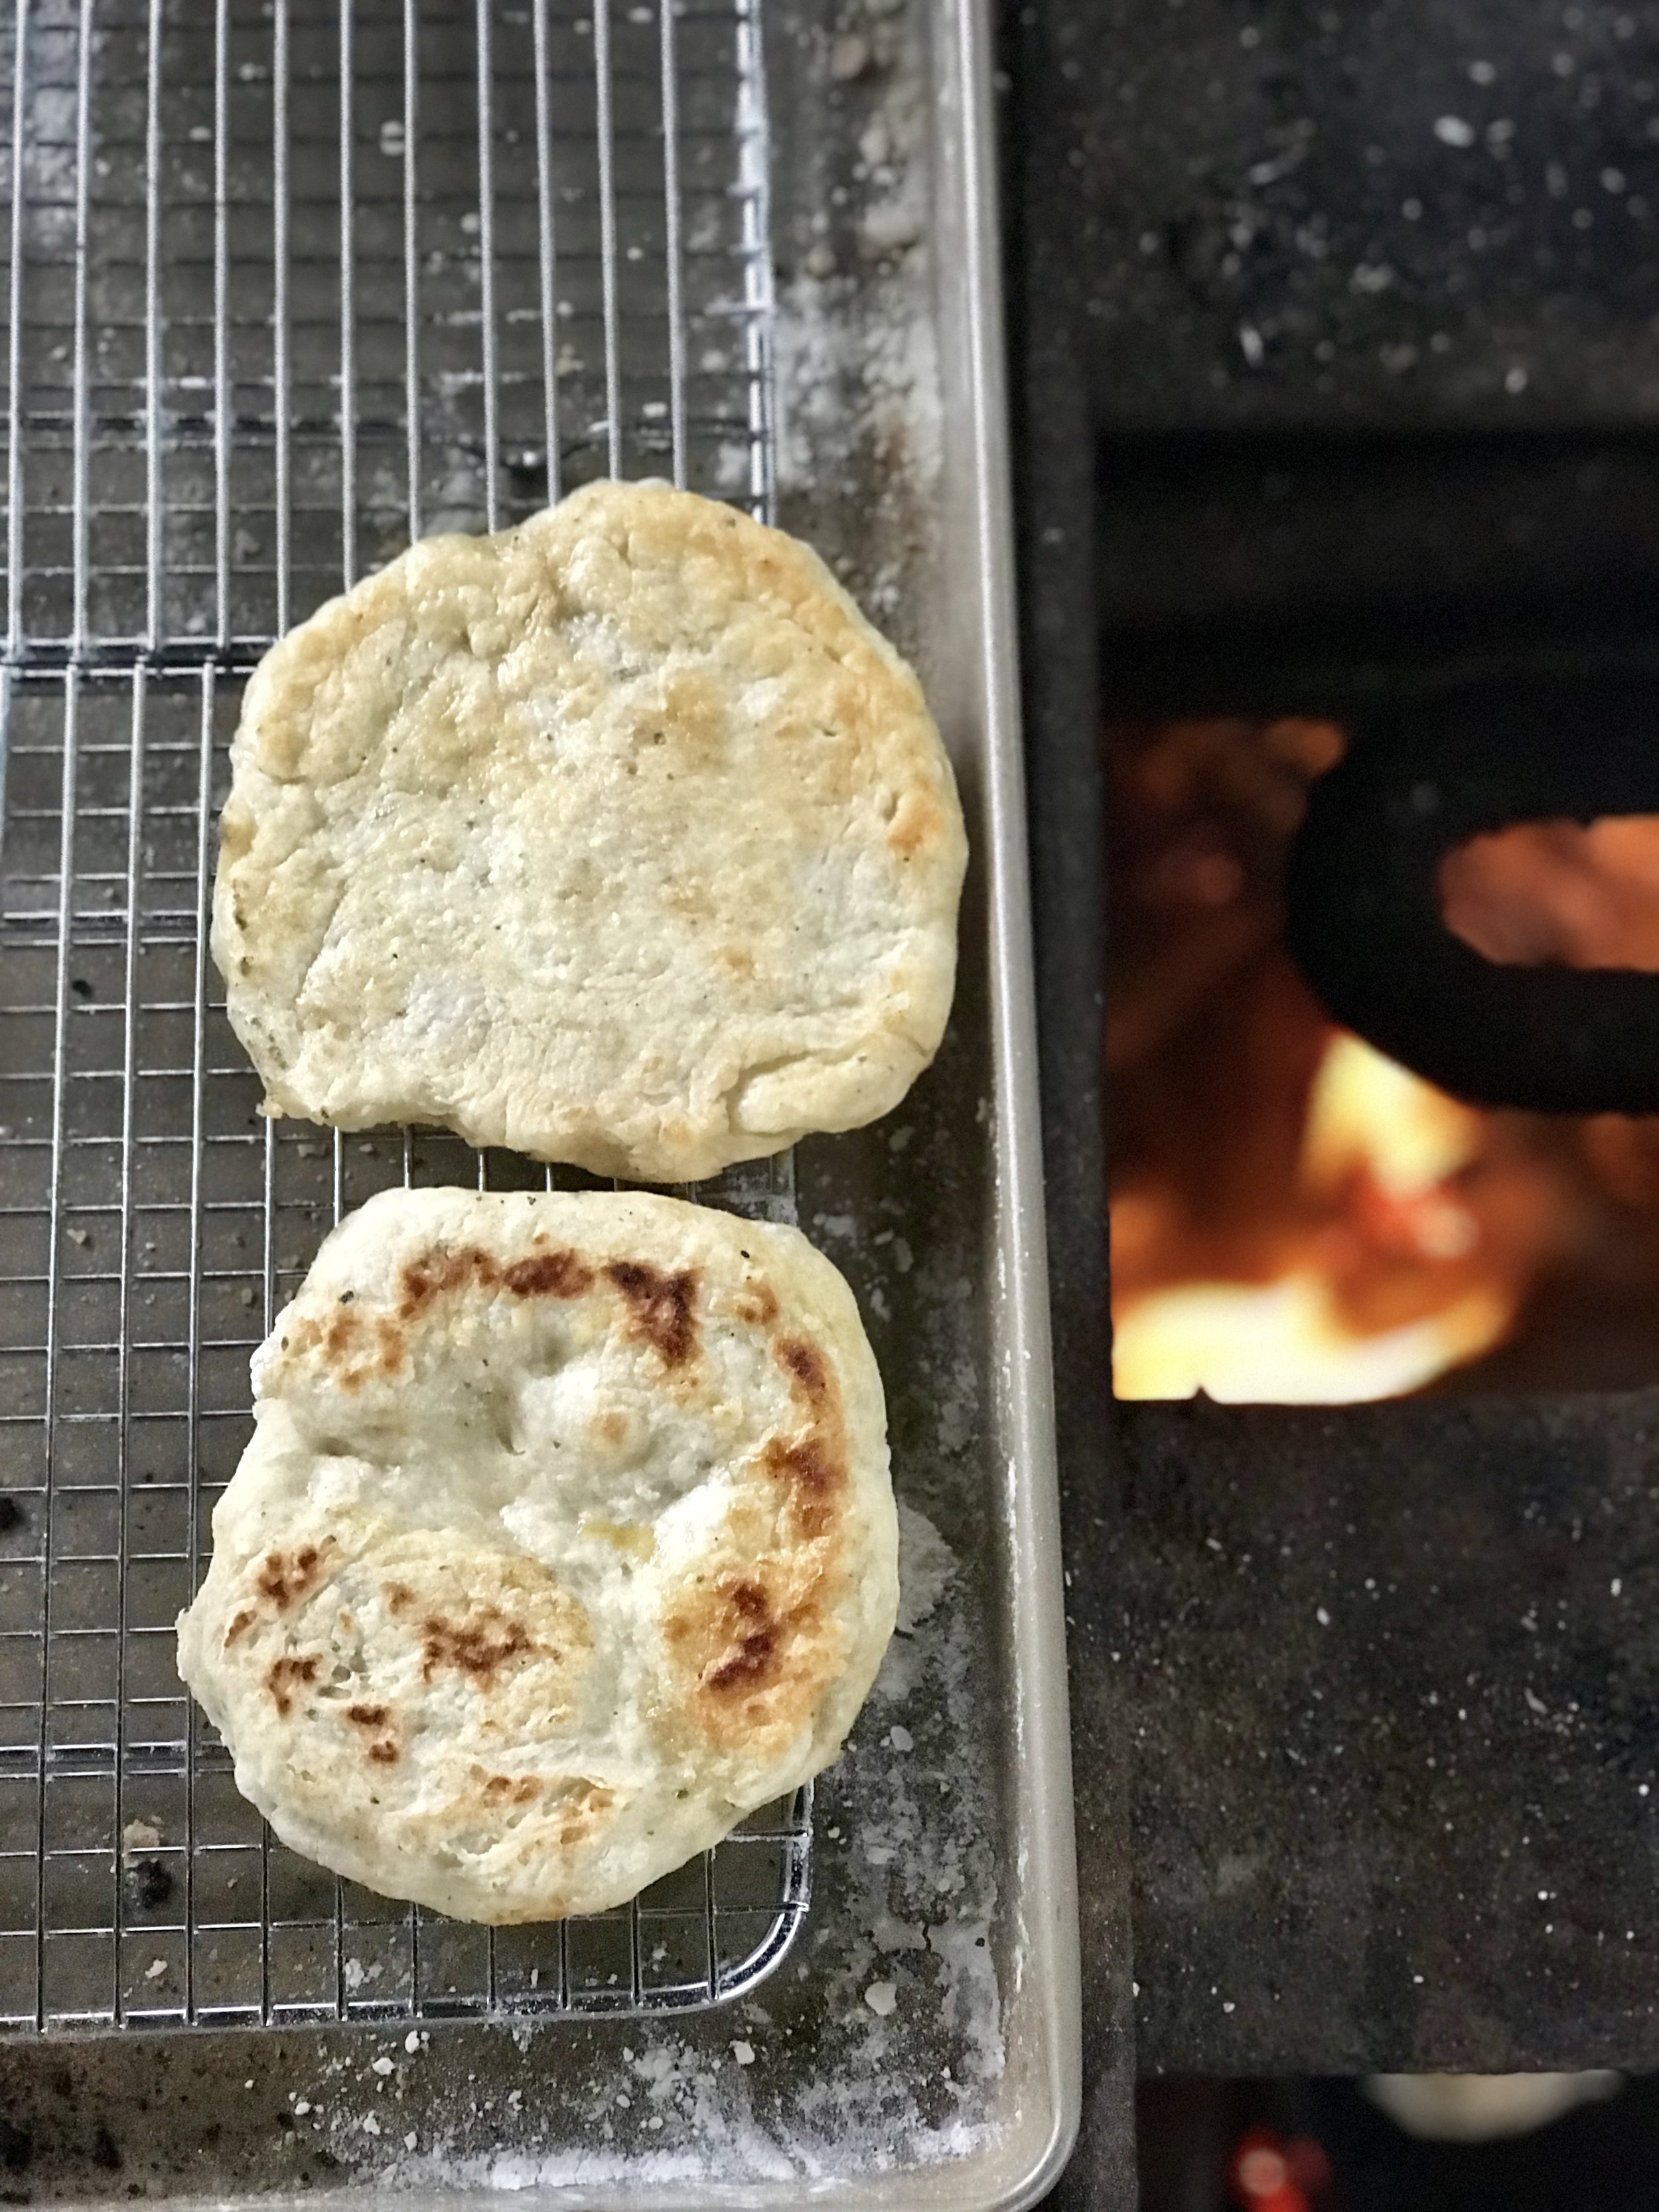 Mini pizzas in the making (image by Jacqui Gibson).